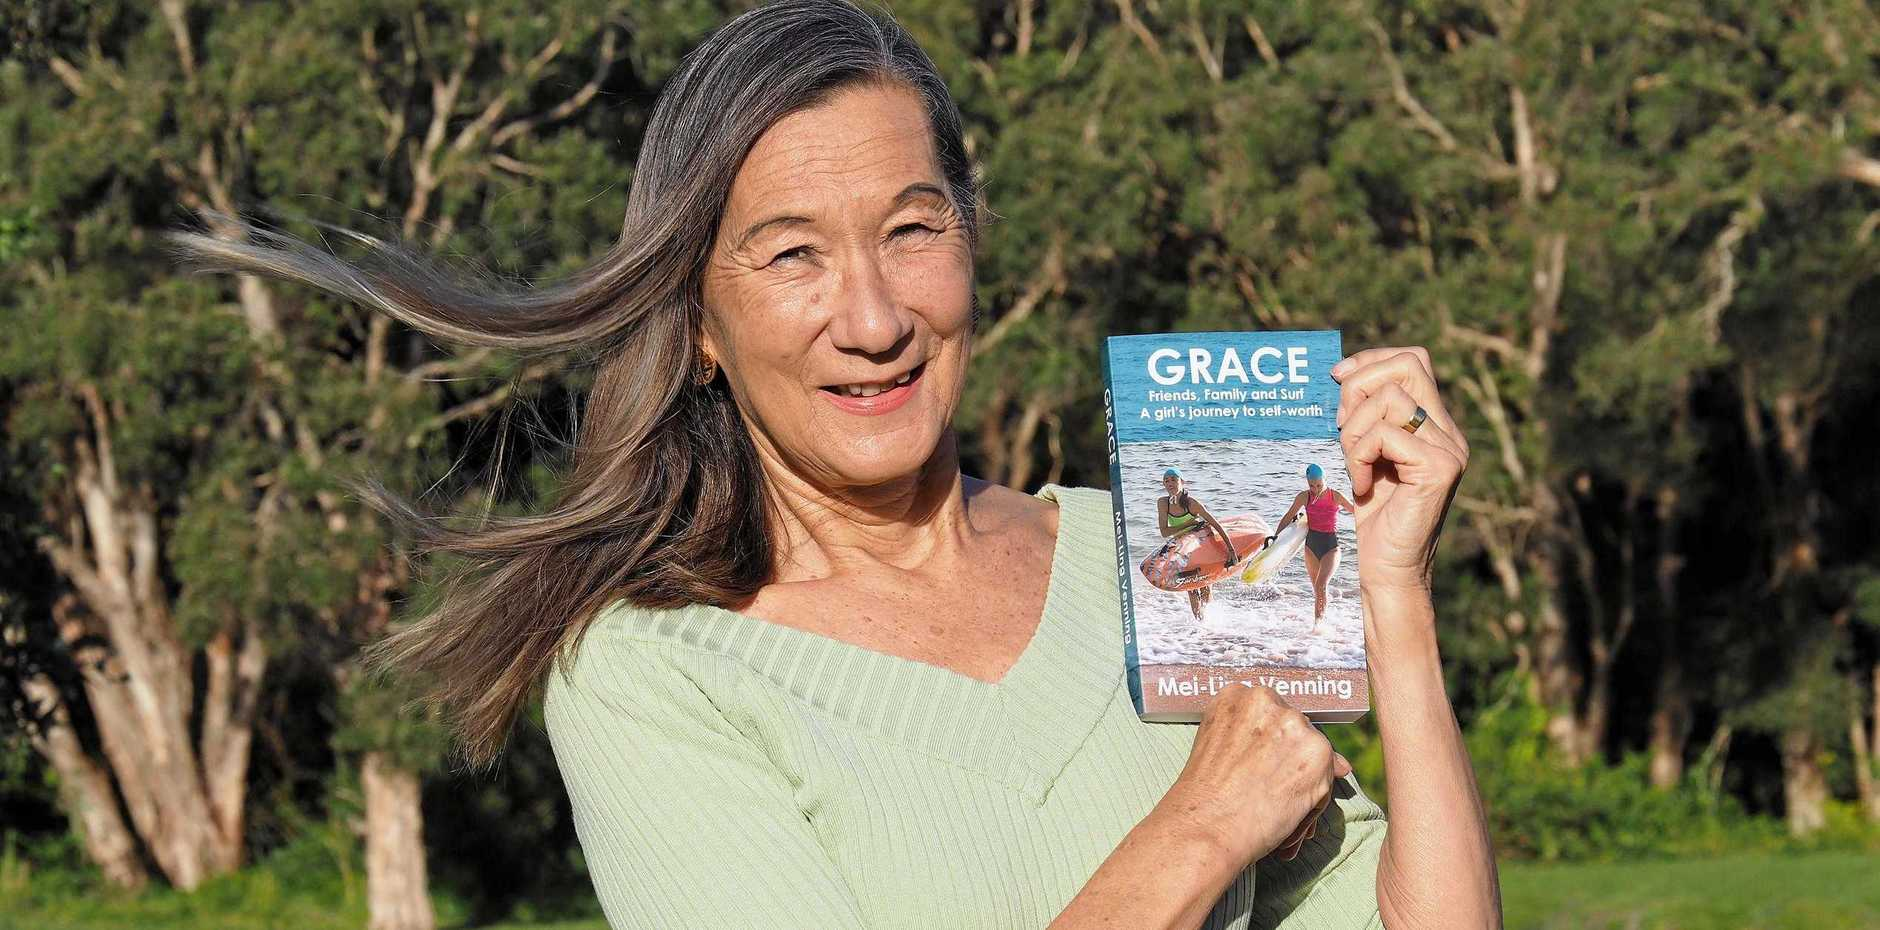 GRACE: Mei-Ling Venning is ready for the launch on September 28 of her new book, which deals with friendship, family, bullying, attitudes to people with disabilities, and the benefits of the surf lifesaving movement.